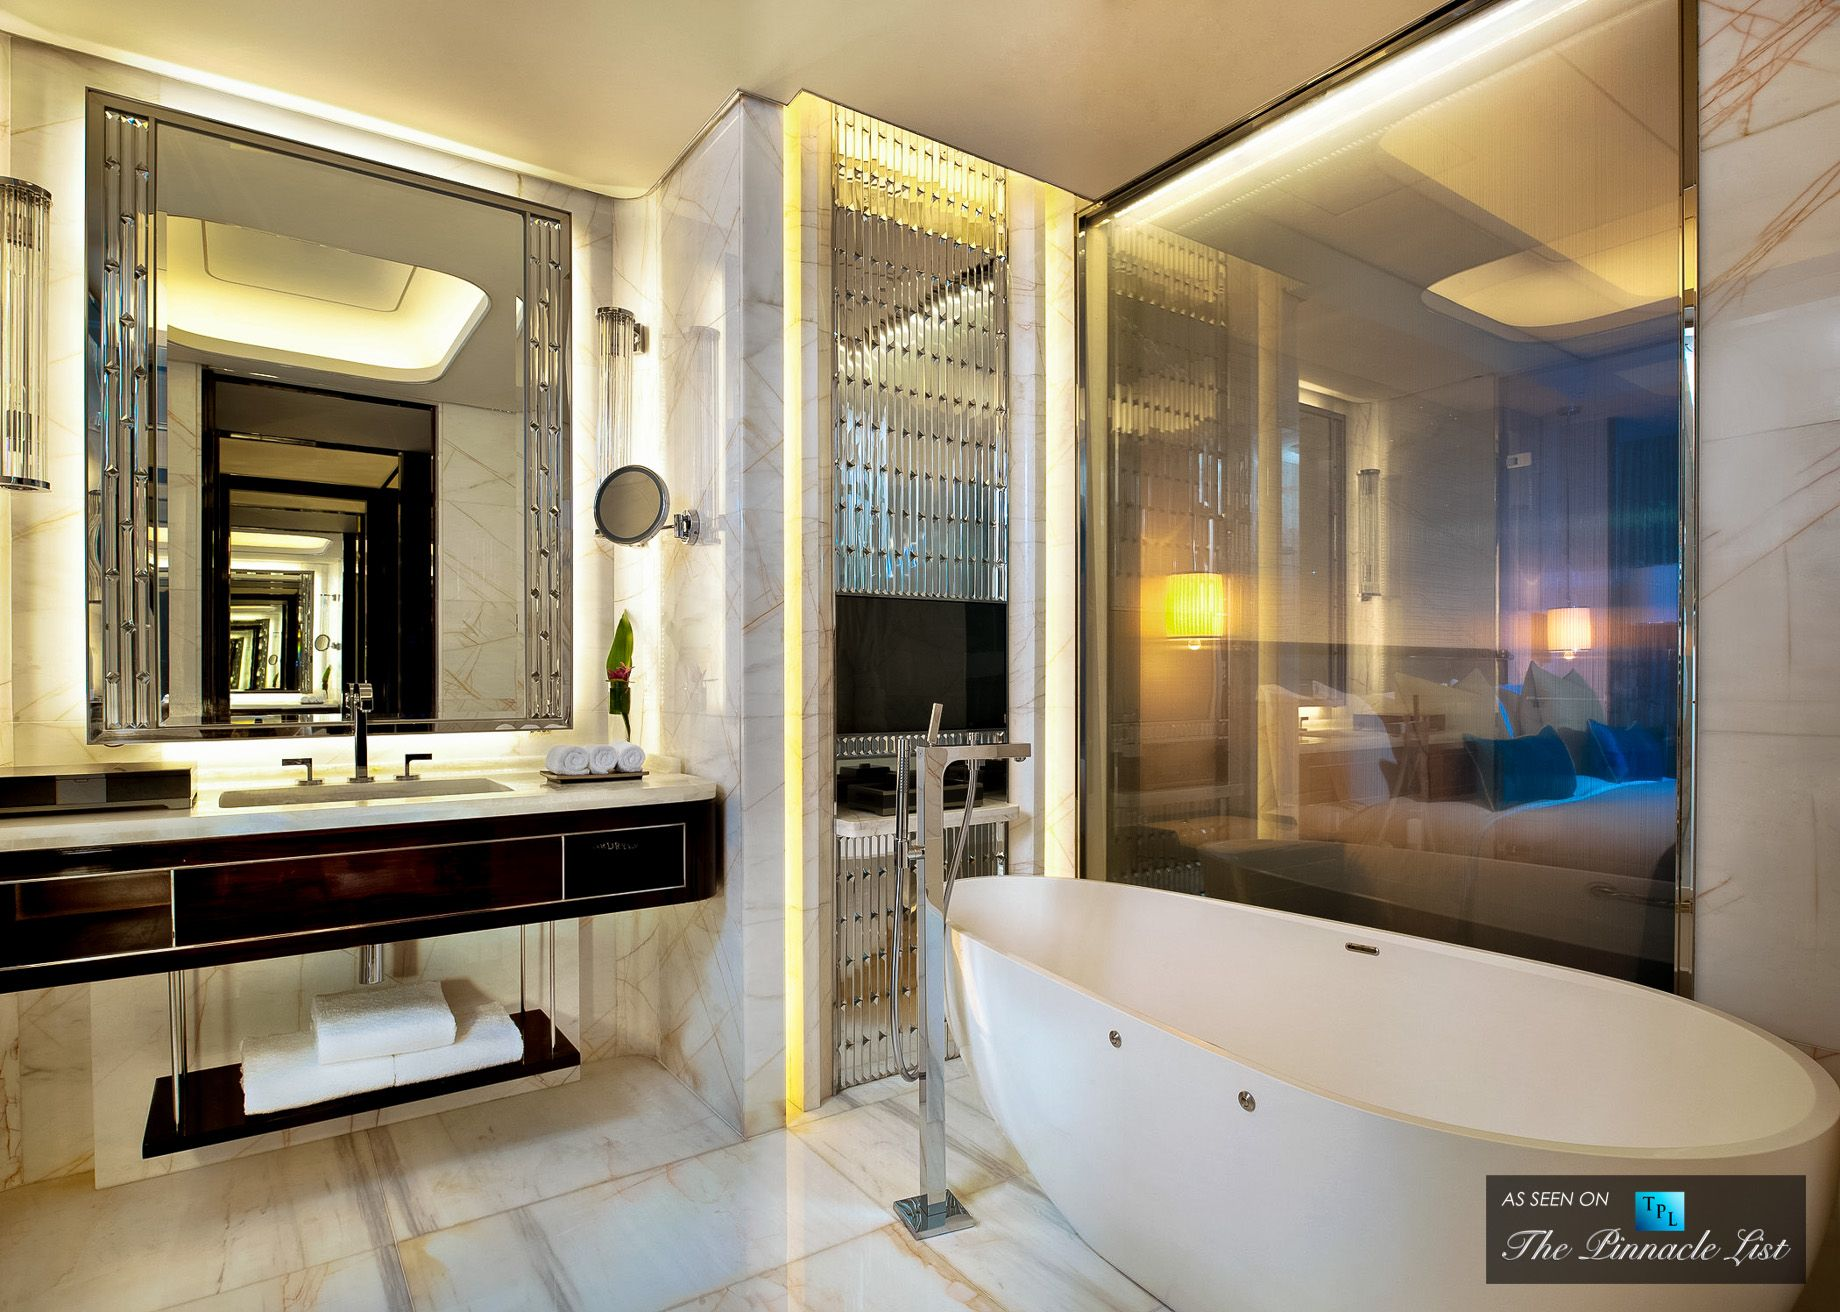 St regis luxury hotel shenzhen china deluxe bathroom for Bathroom design center near me